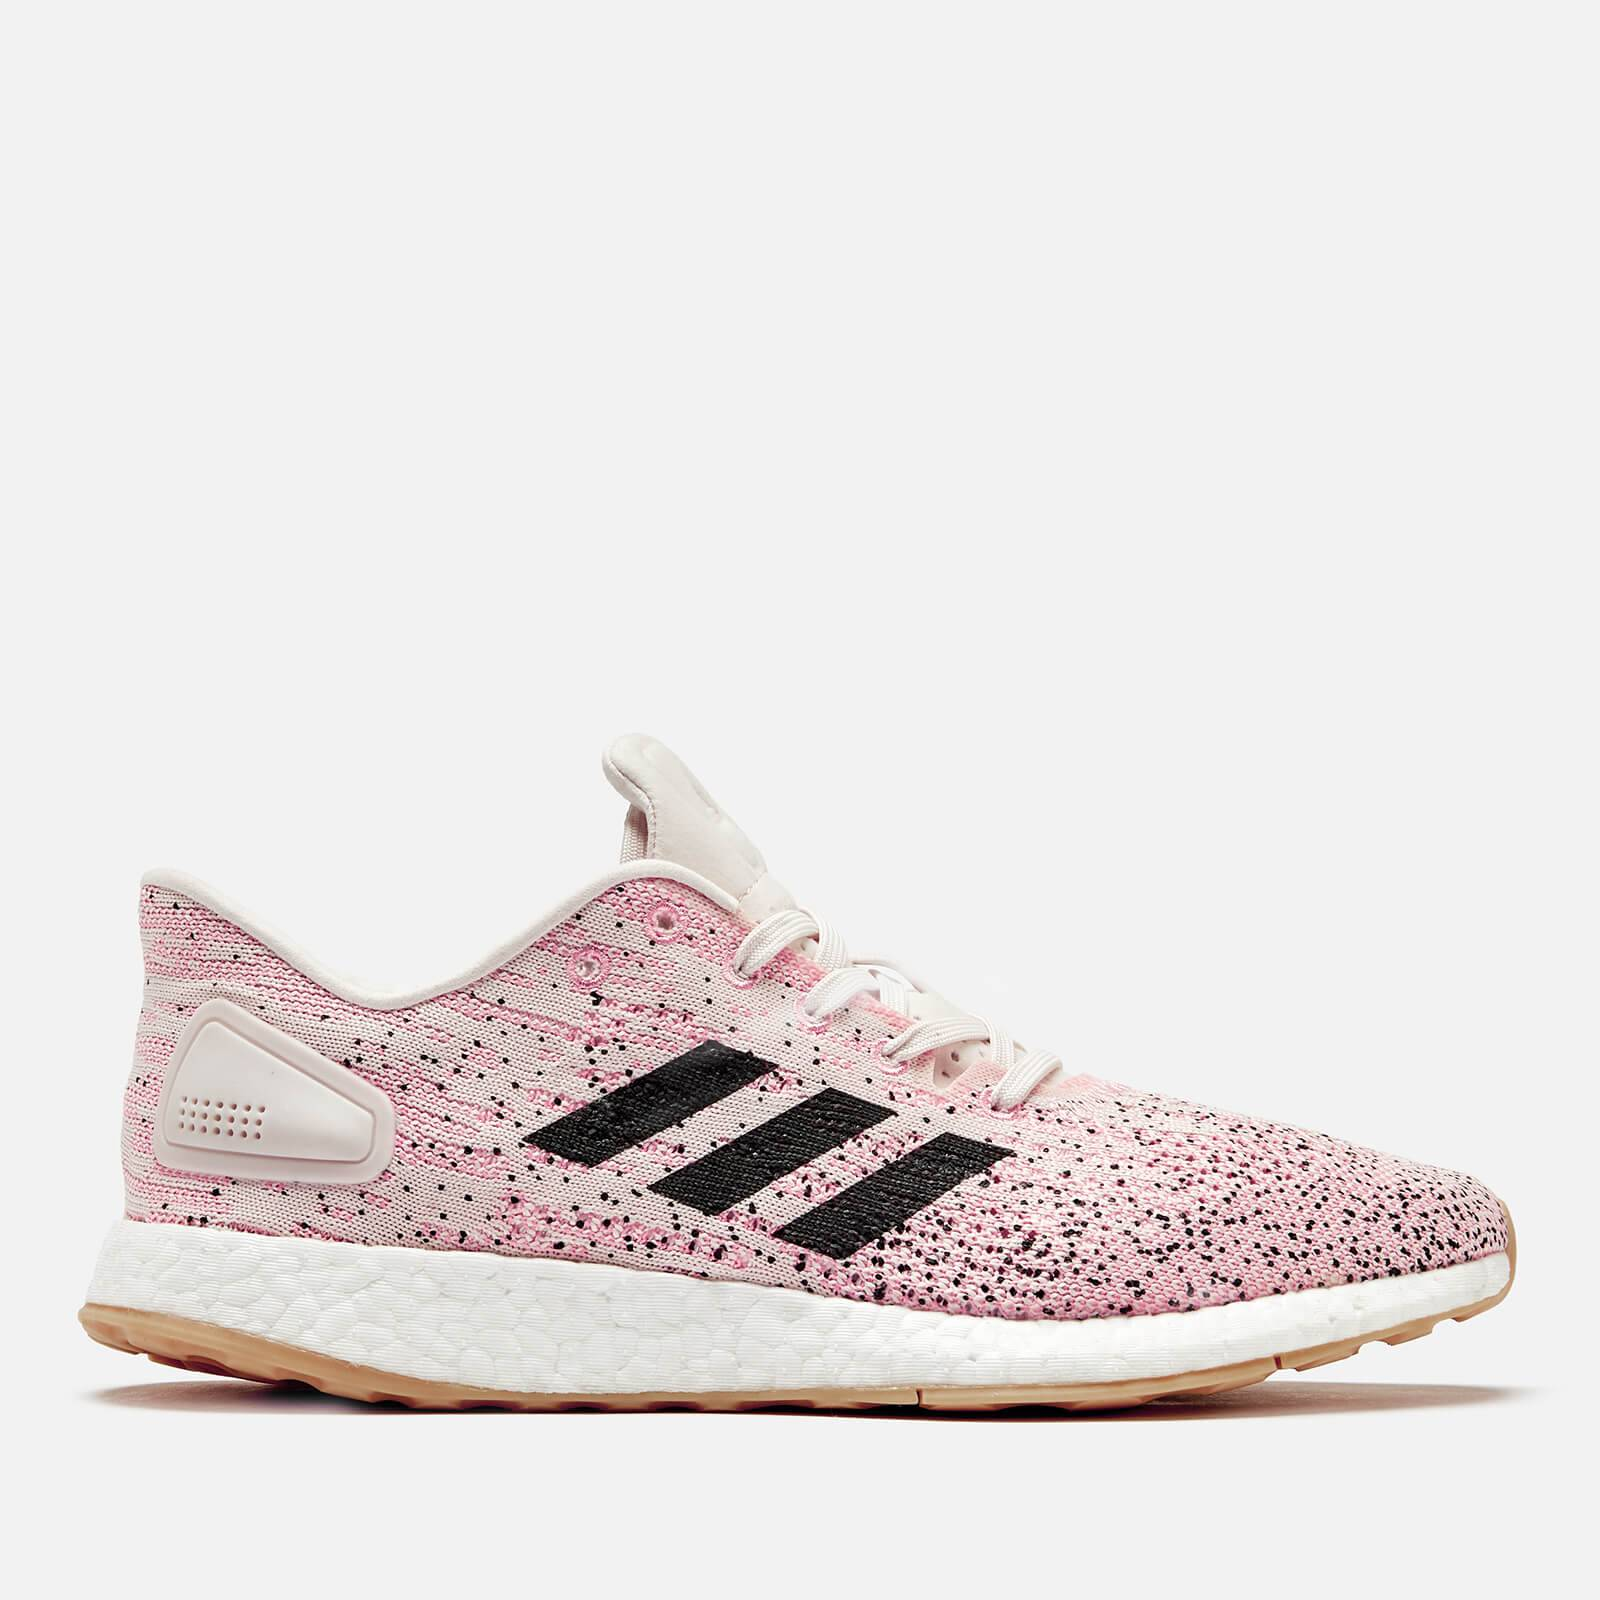 adidas Women's Pure Boost DPR Trainers - True Pink - UK 4 - Pink